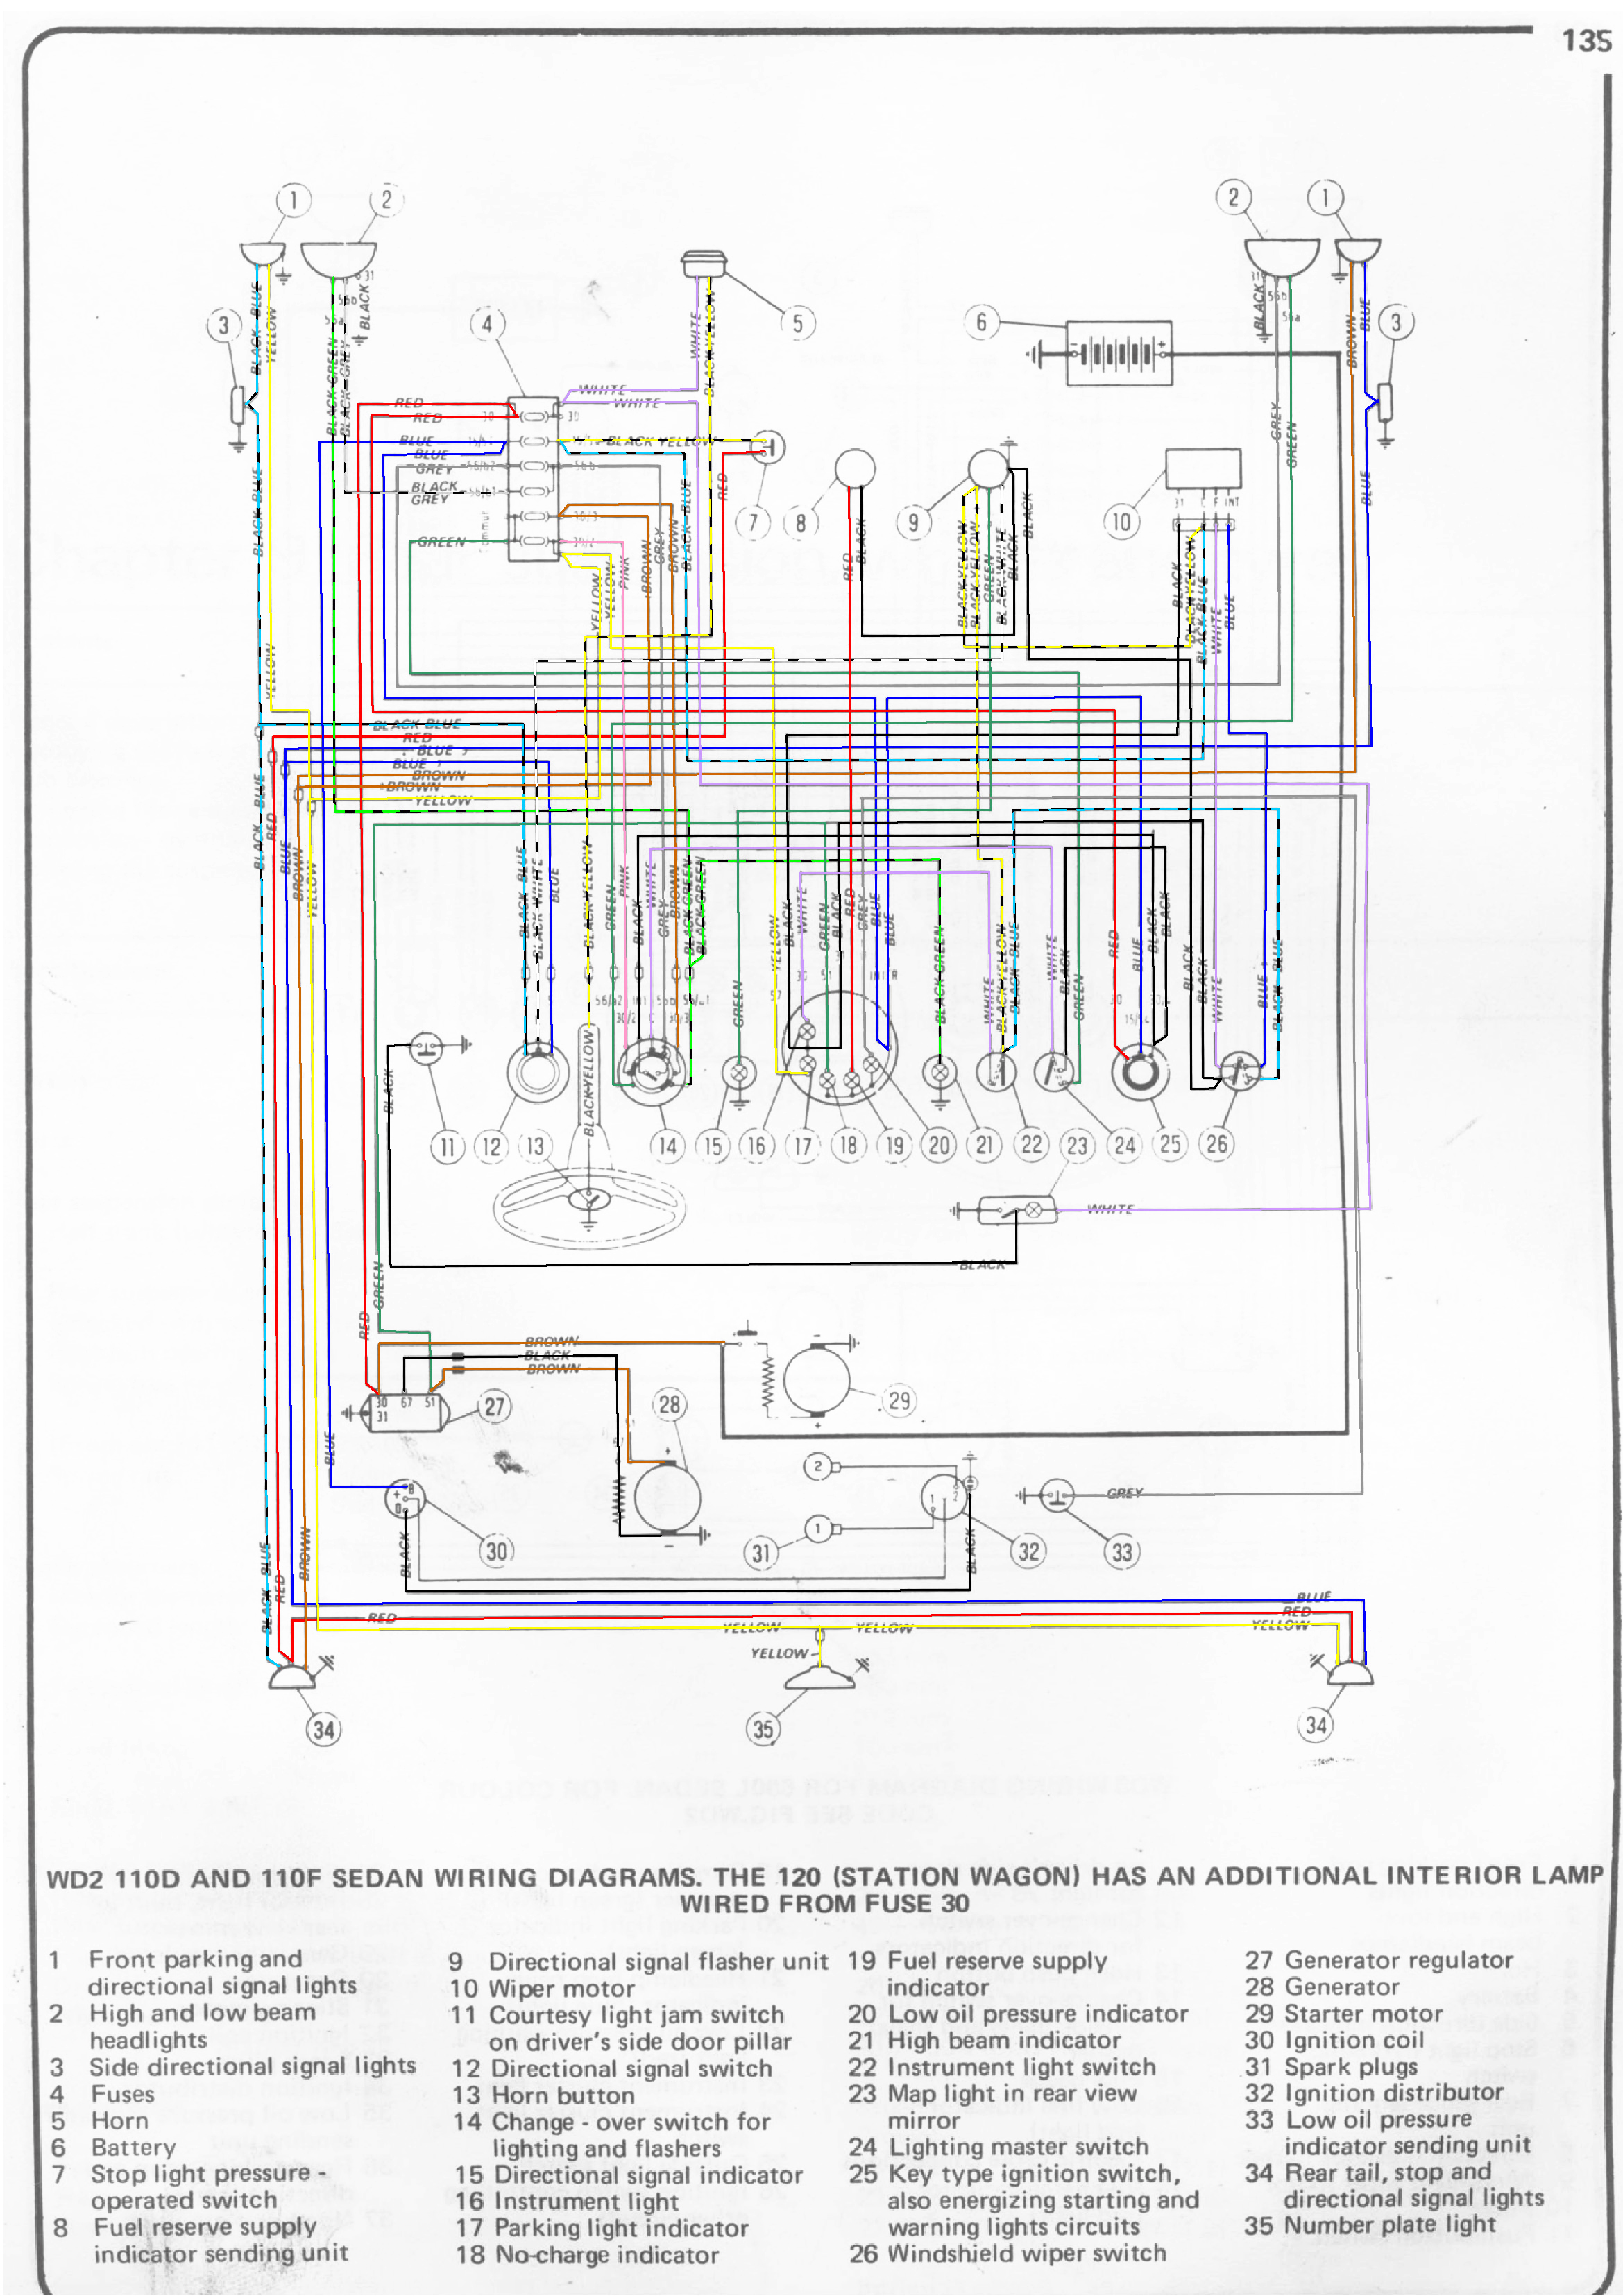 Fiat+500+Wiring+Diagram?t\=1508407624 2012 fiat 500 wiring diagram mb 900 wiring diagram \u2022 free wiring 2012 fiat 500 wiring diagram at creativeand.co